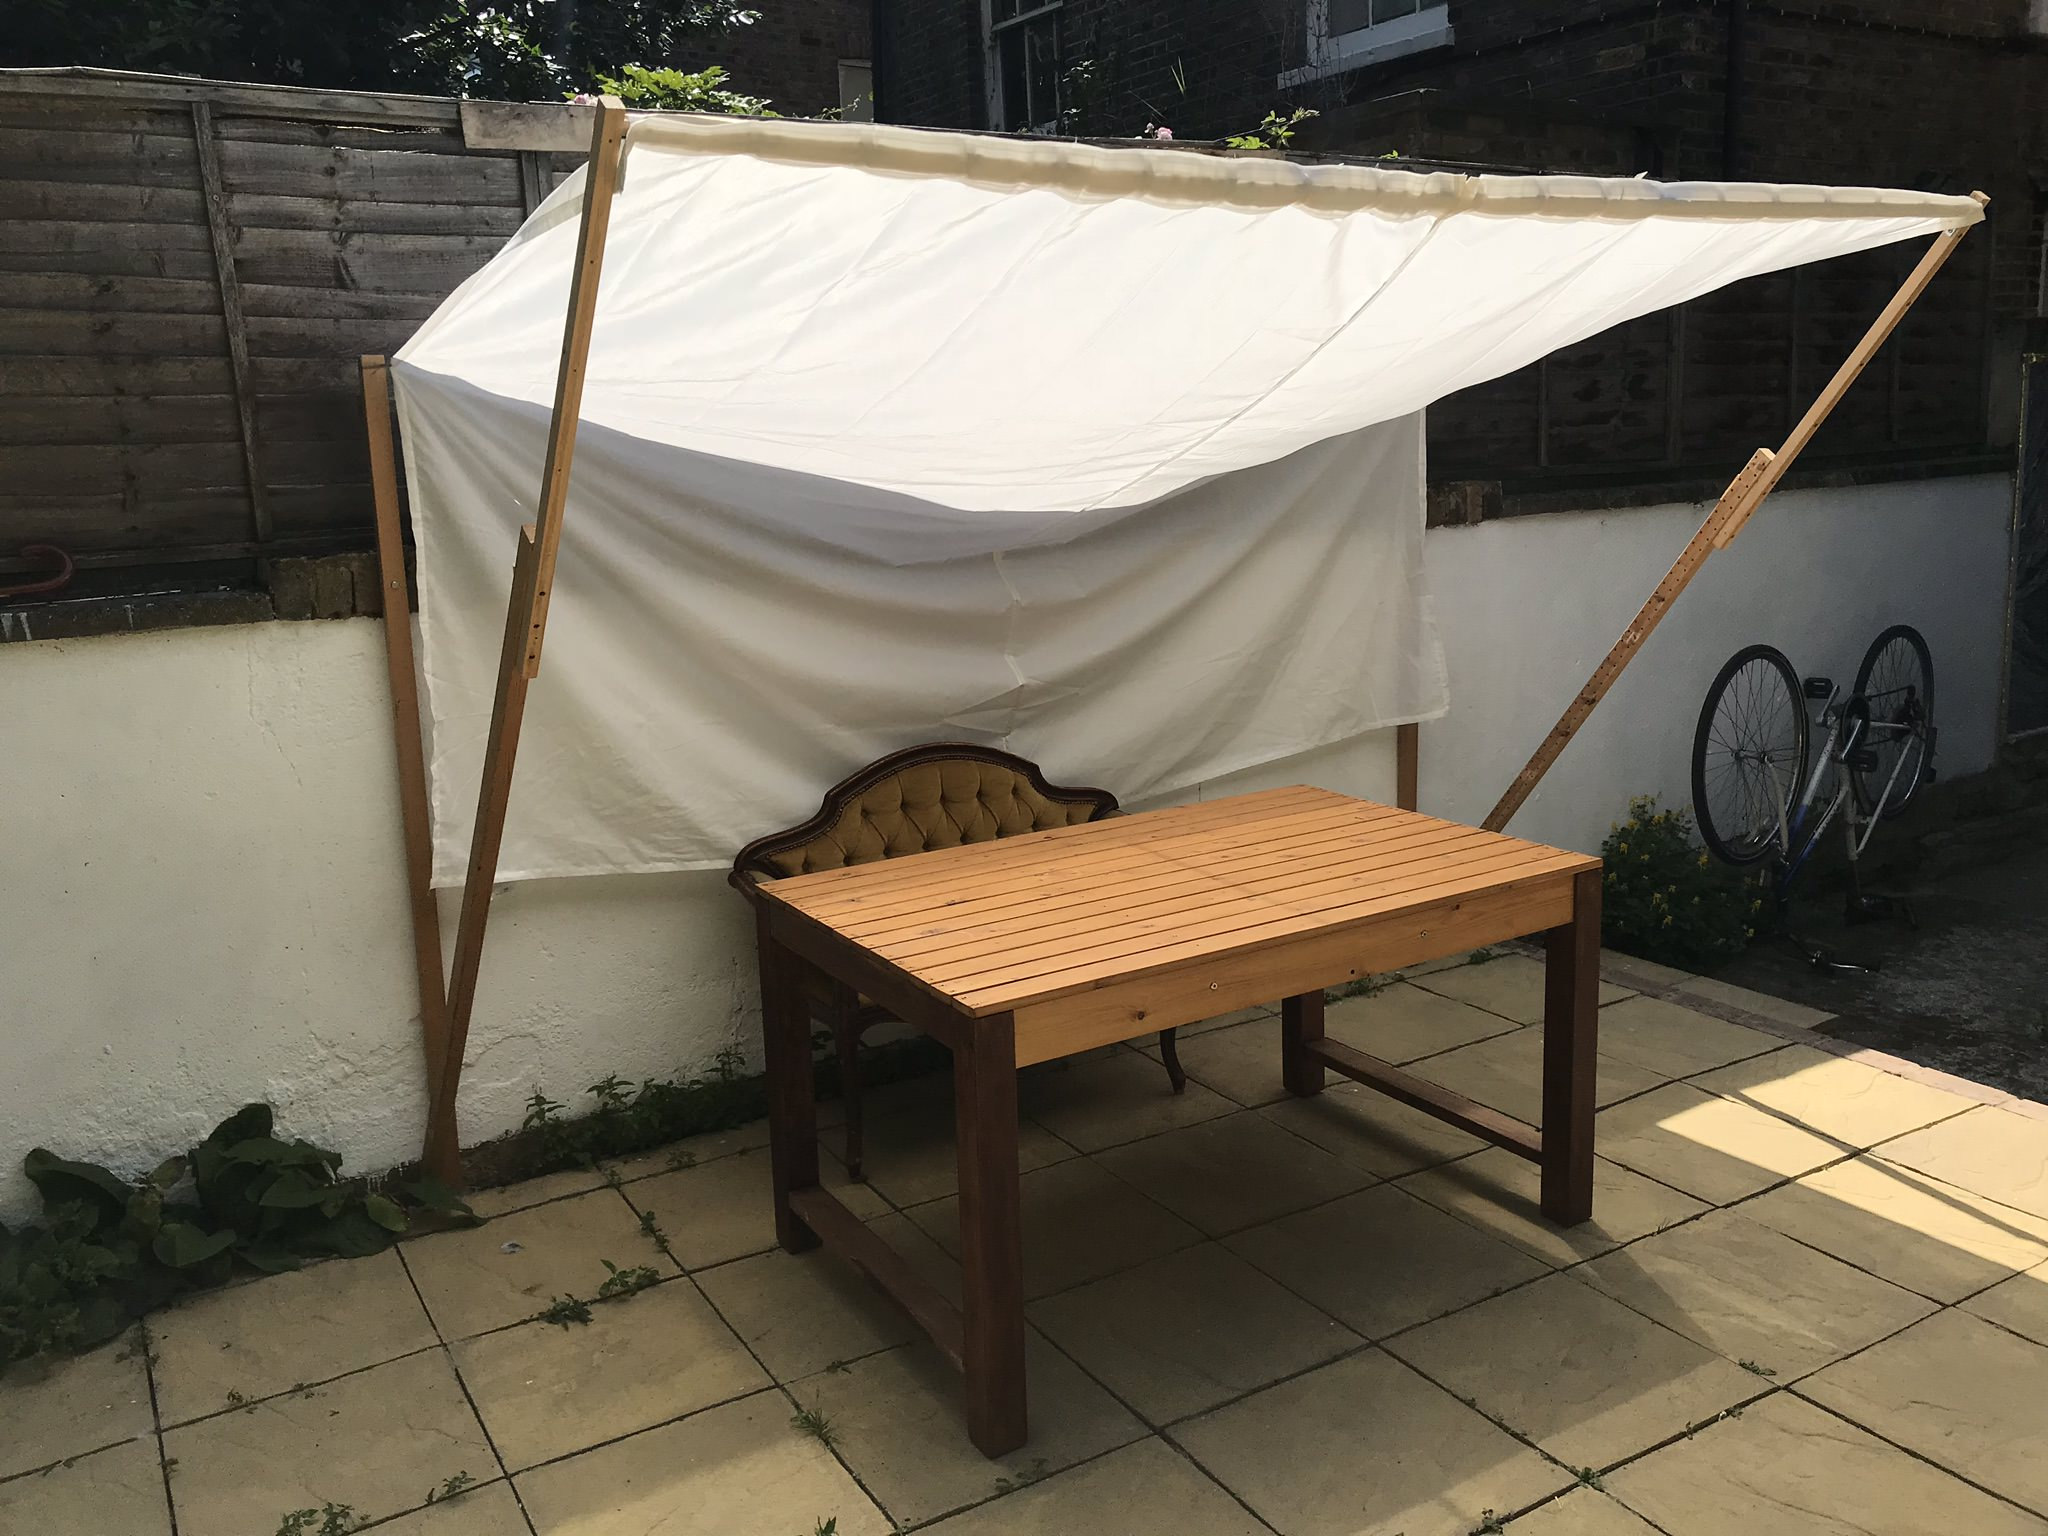 Pergola in assembled and open state creating a shade